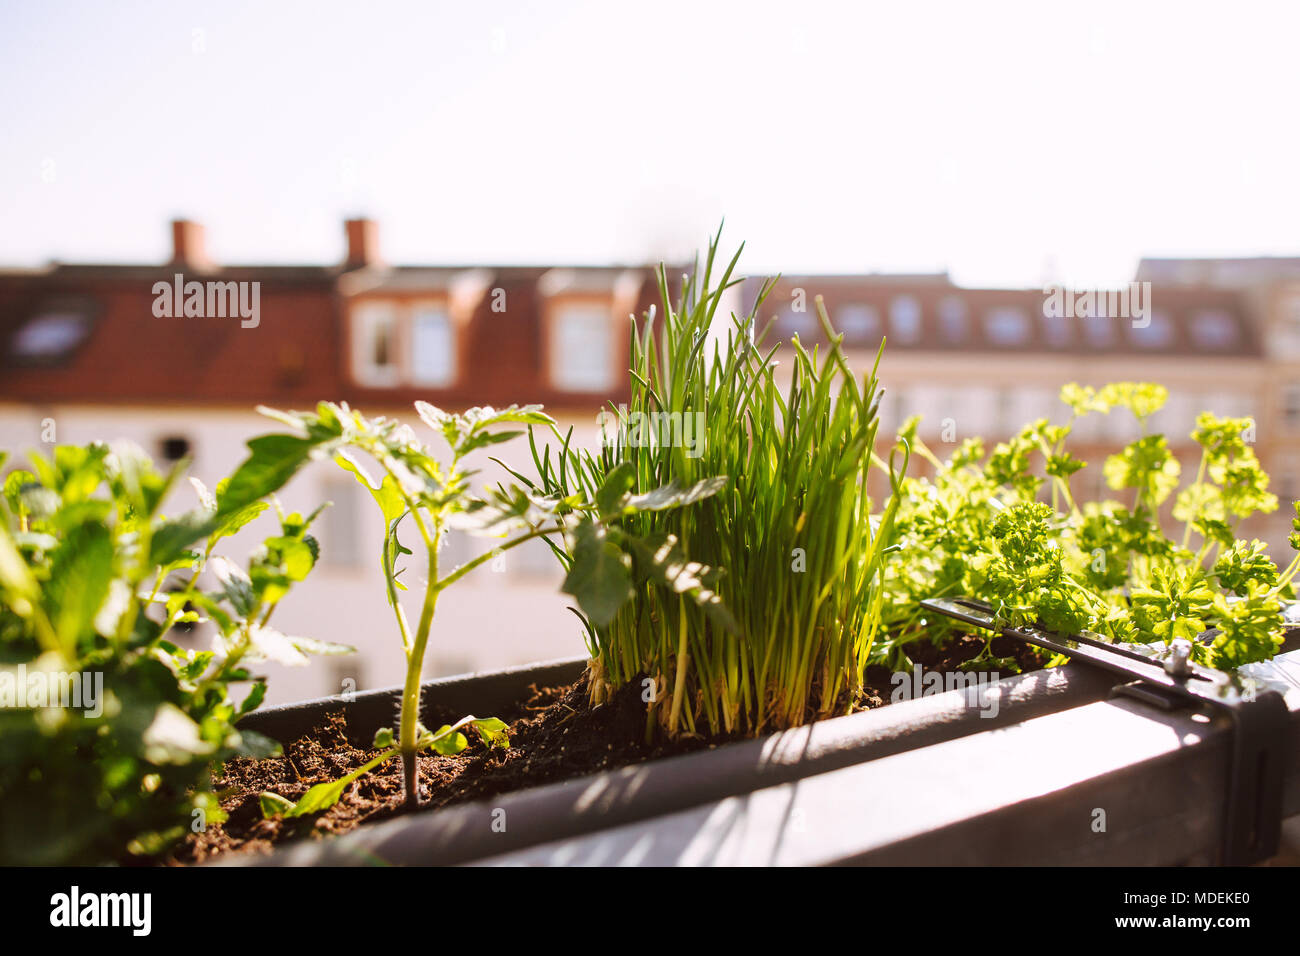 flower-box with growing fresh herbs on the balcony - Stock Image